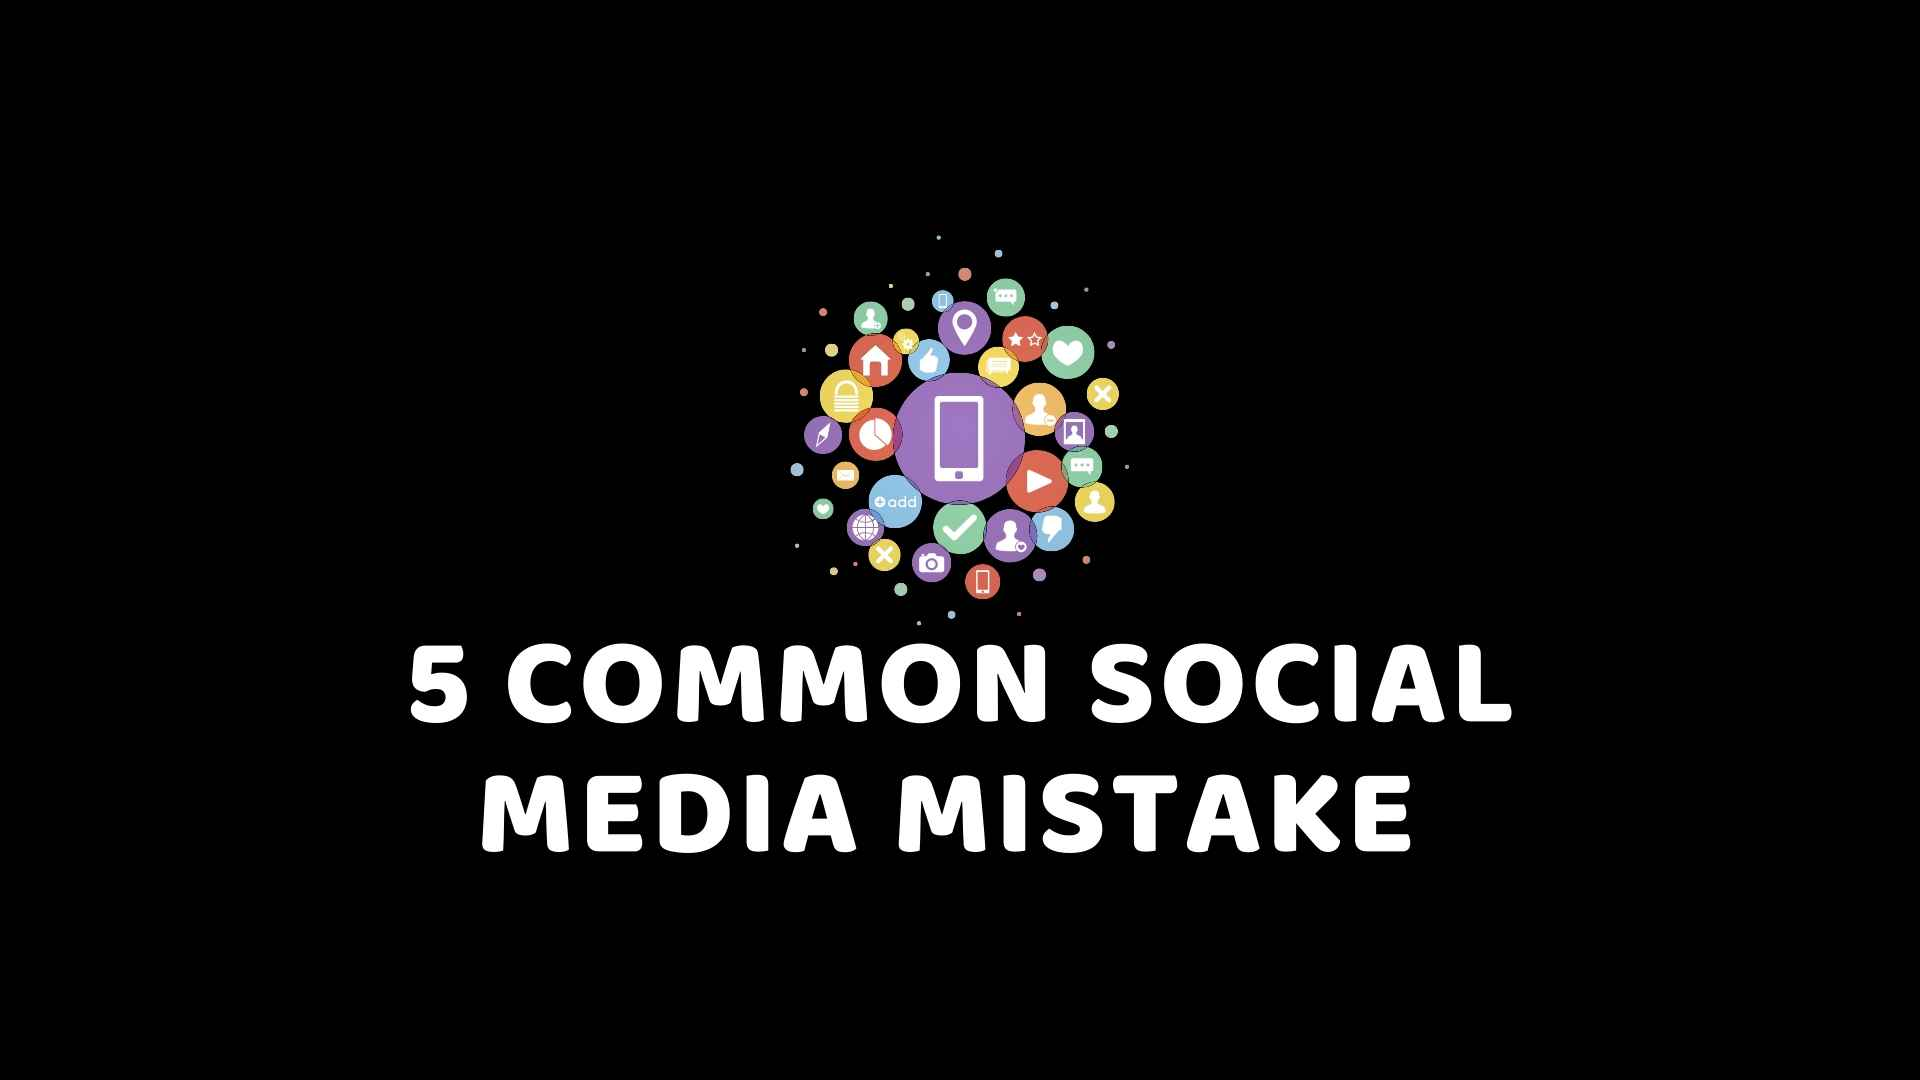 5 common social media mistake